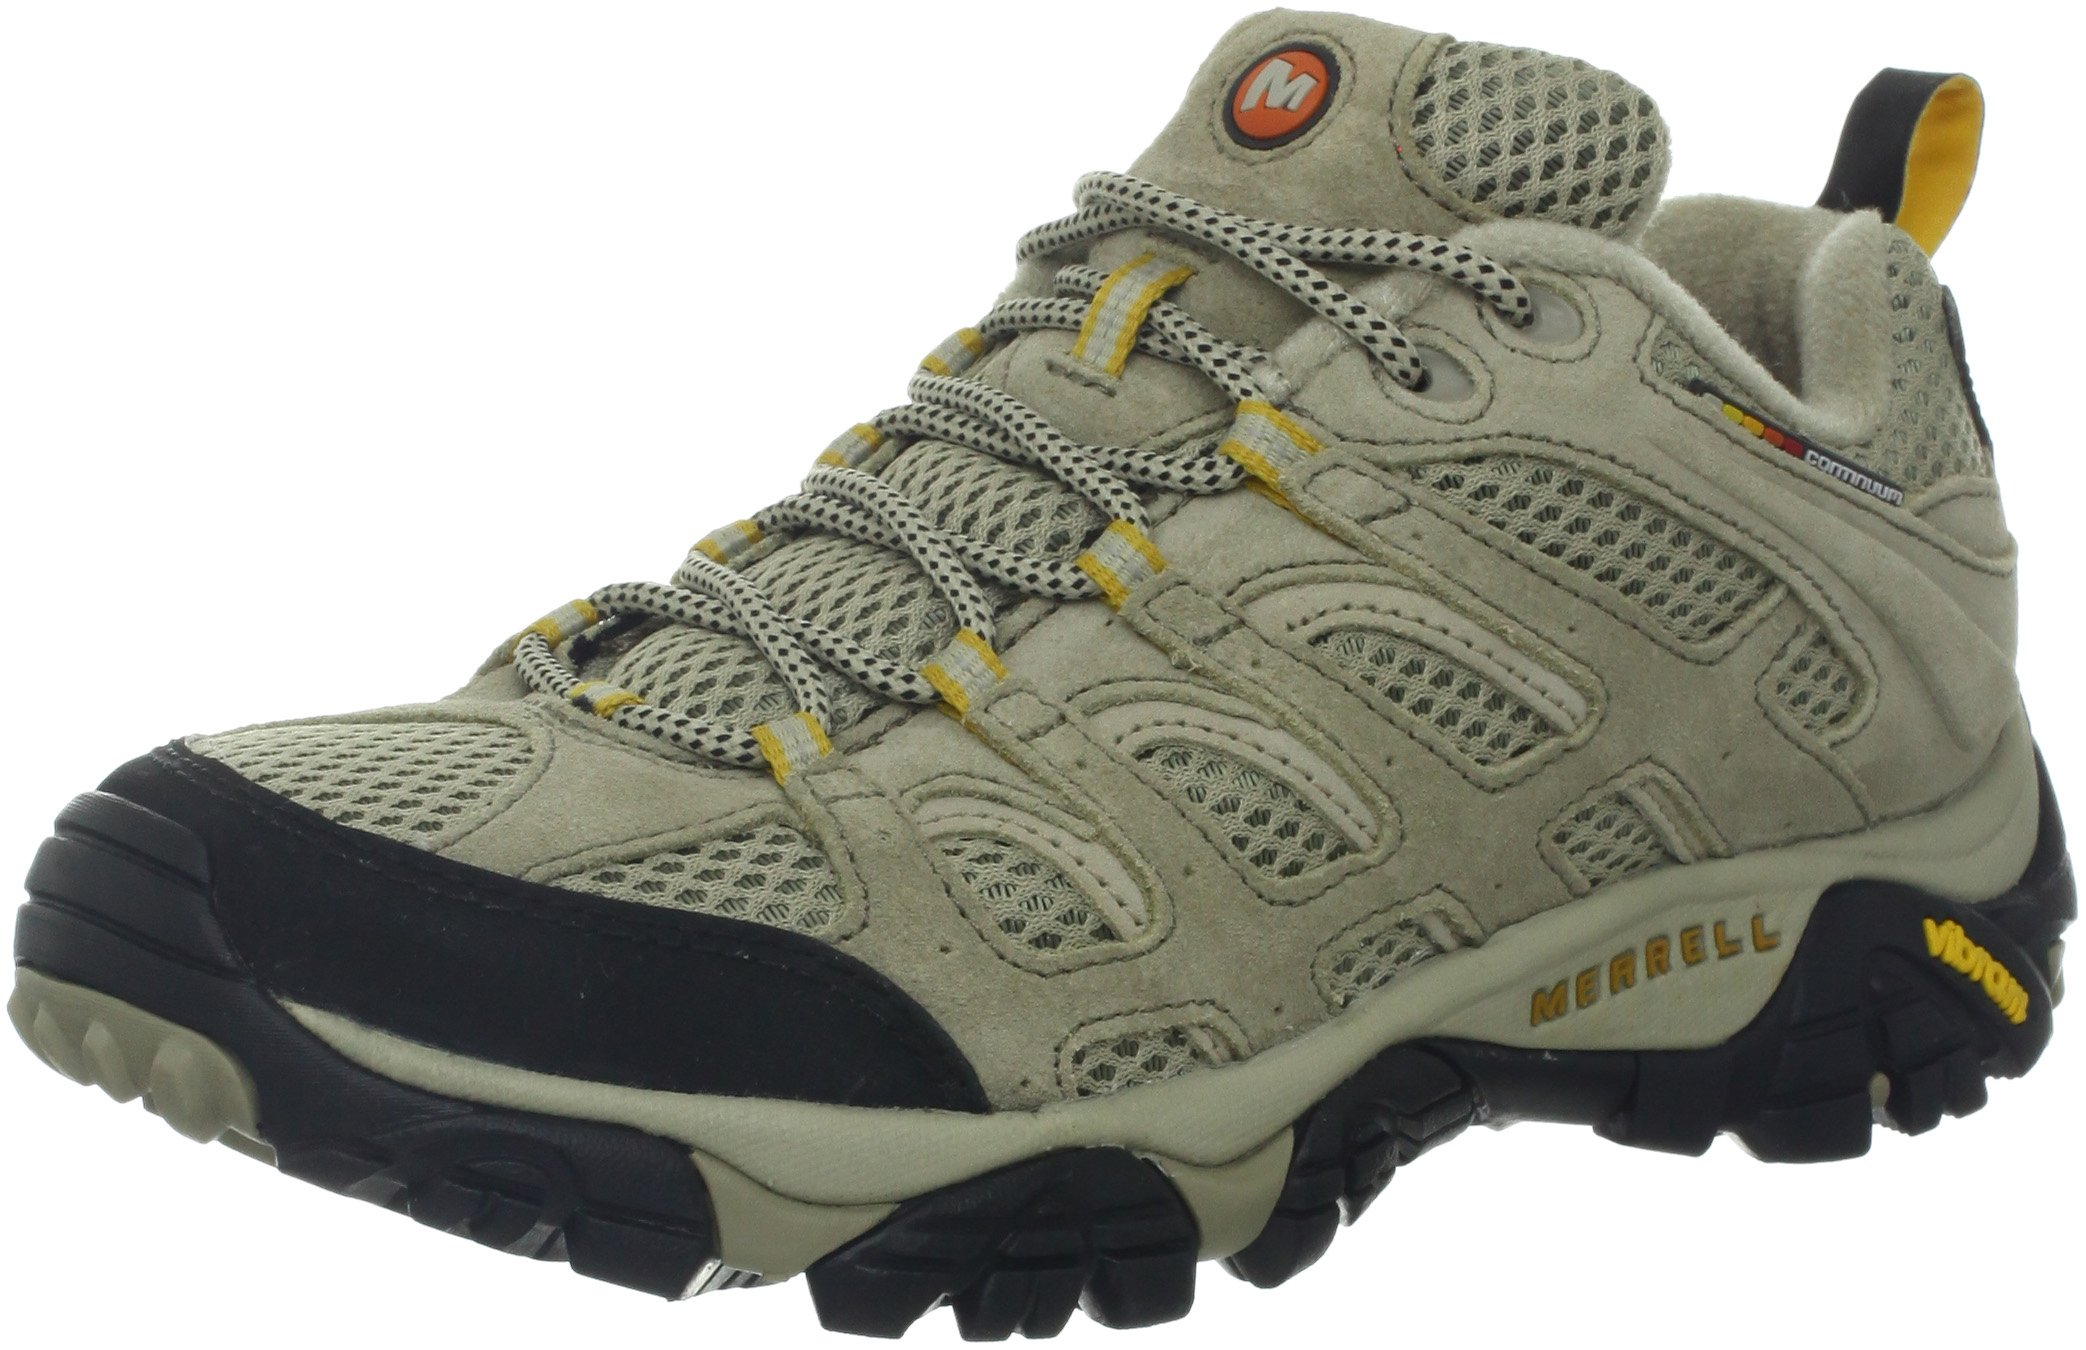 Merrell Women's Moab Ventilator Hiking Shoe,Taupe,6 M US